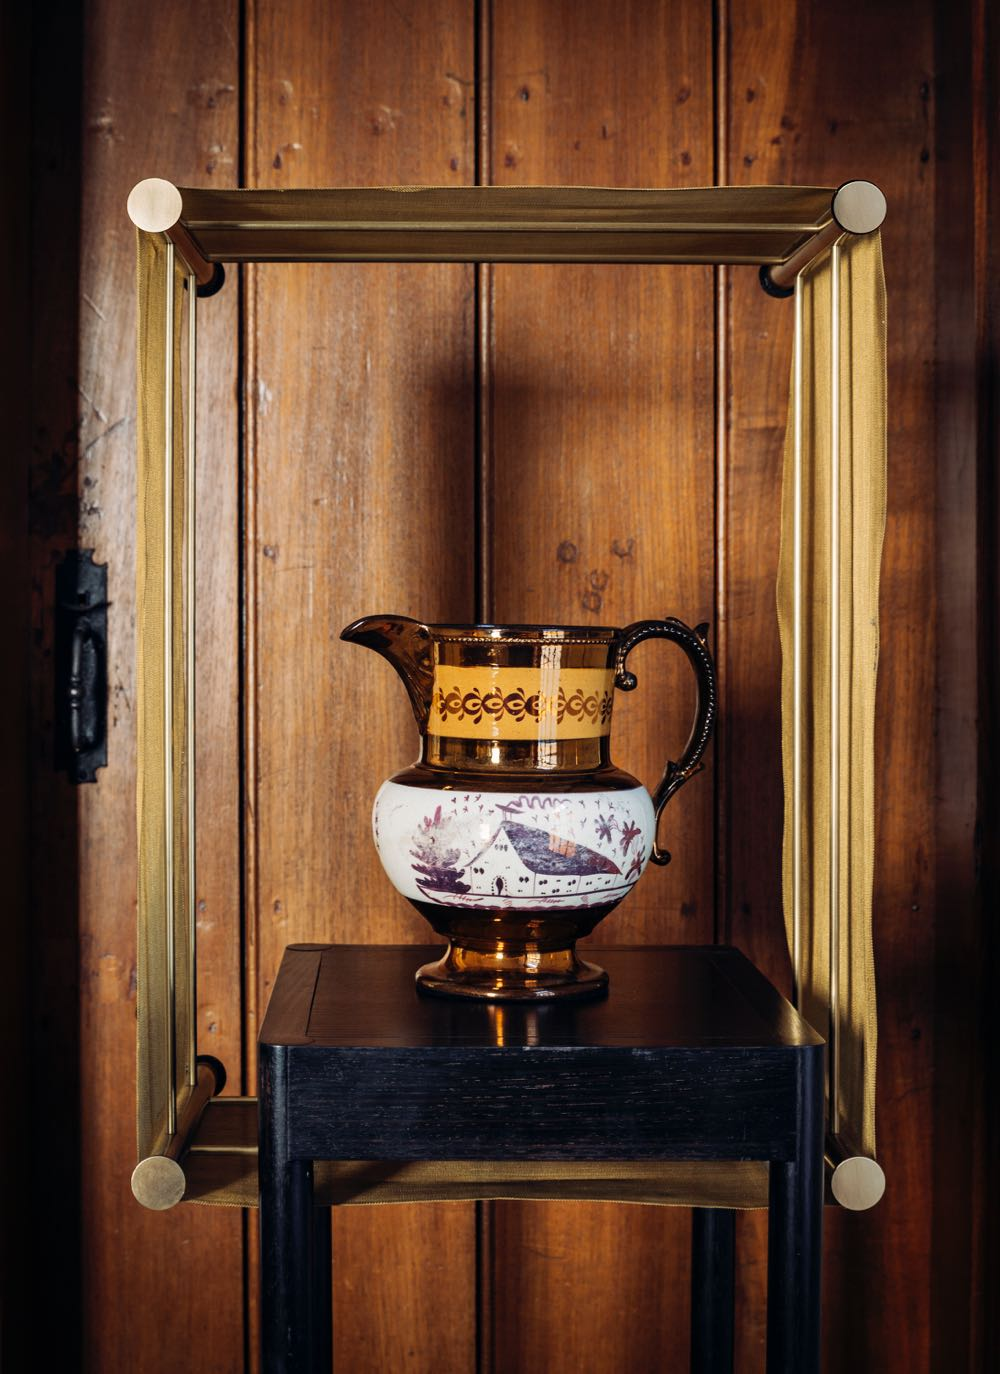 Elliot Rich's 'Coolgardie Line Curio' (2015) made from timber brass and clear acrylic by Oscar Prieckaerts and Lucy Godoroja with a water jug from the Old Government House collection.